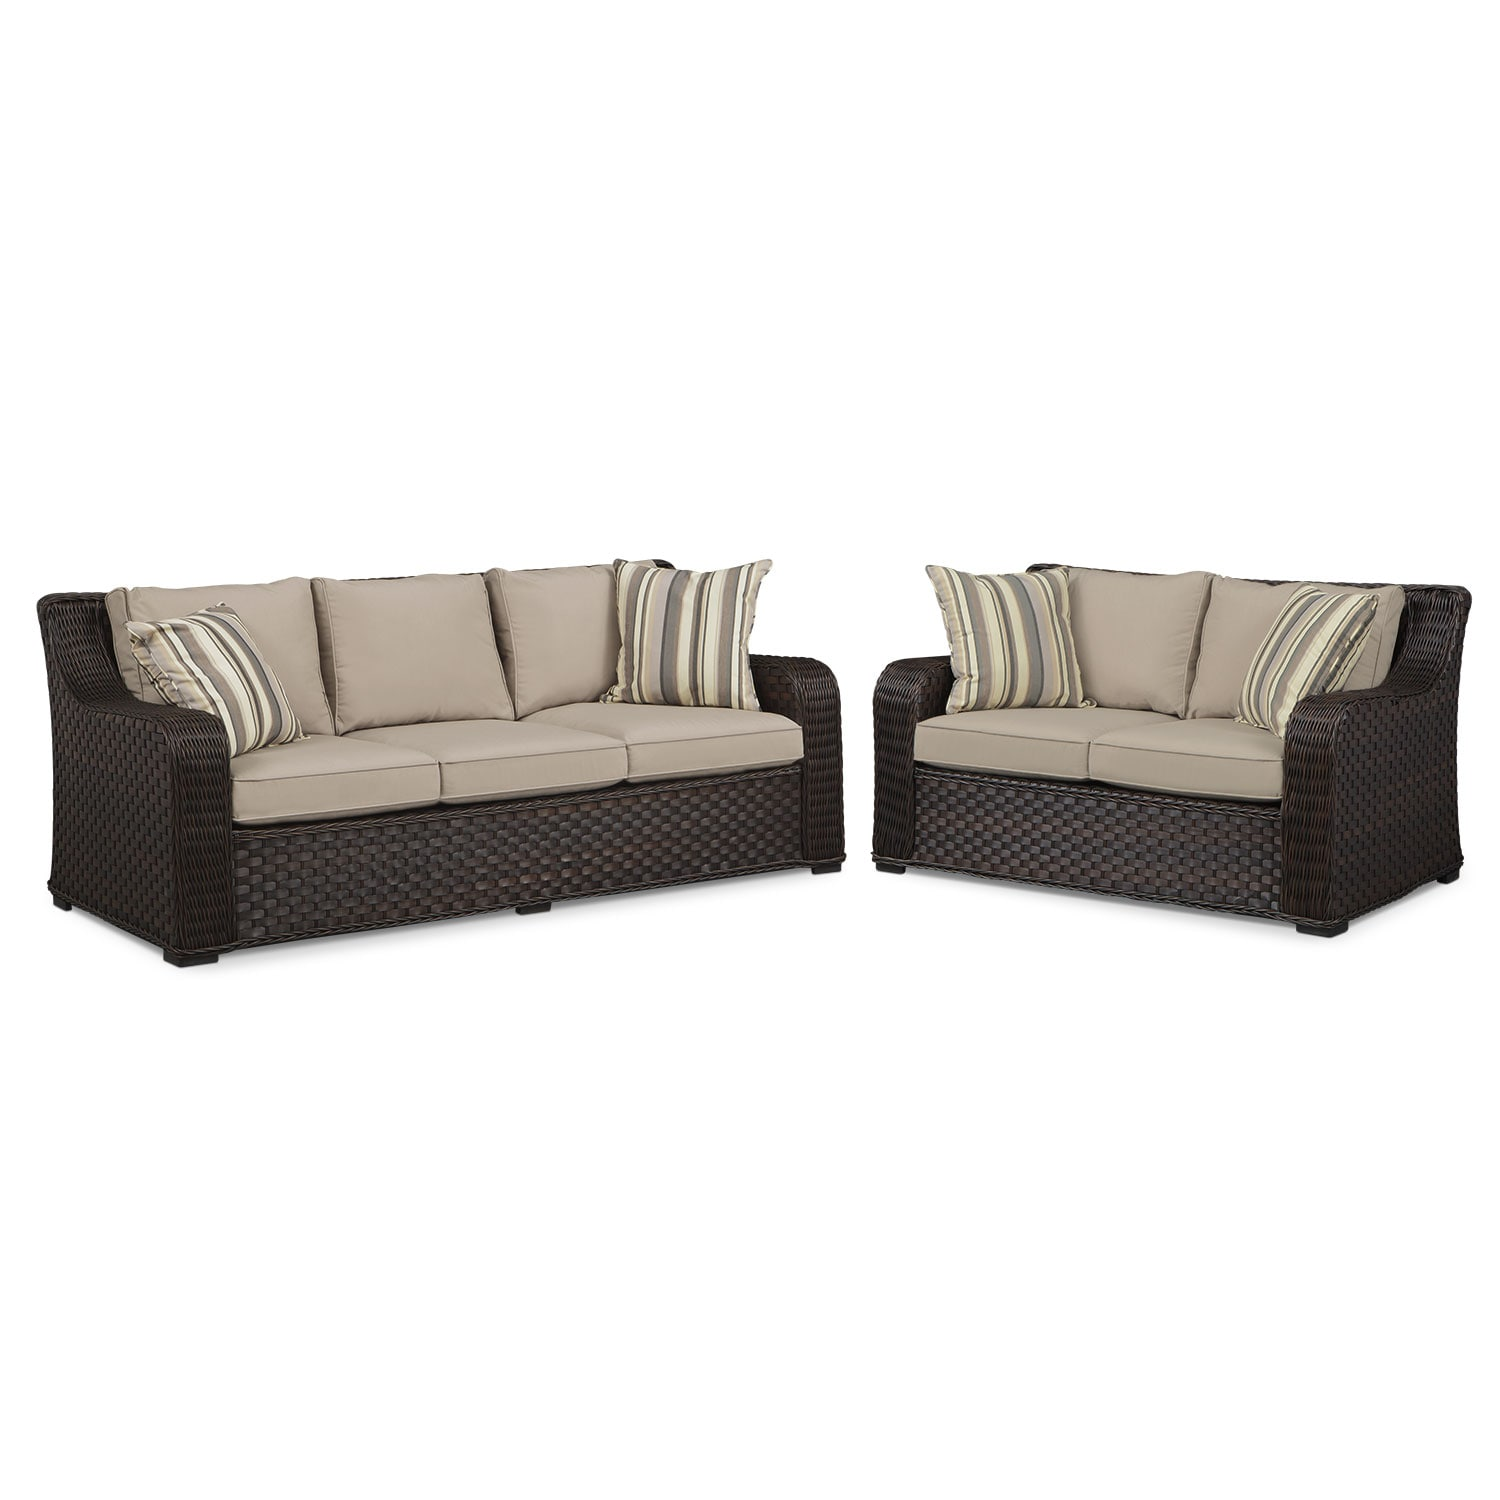 Doral 2 Pc. Outdoor Living Room